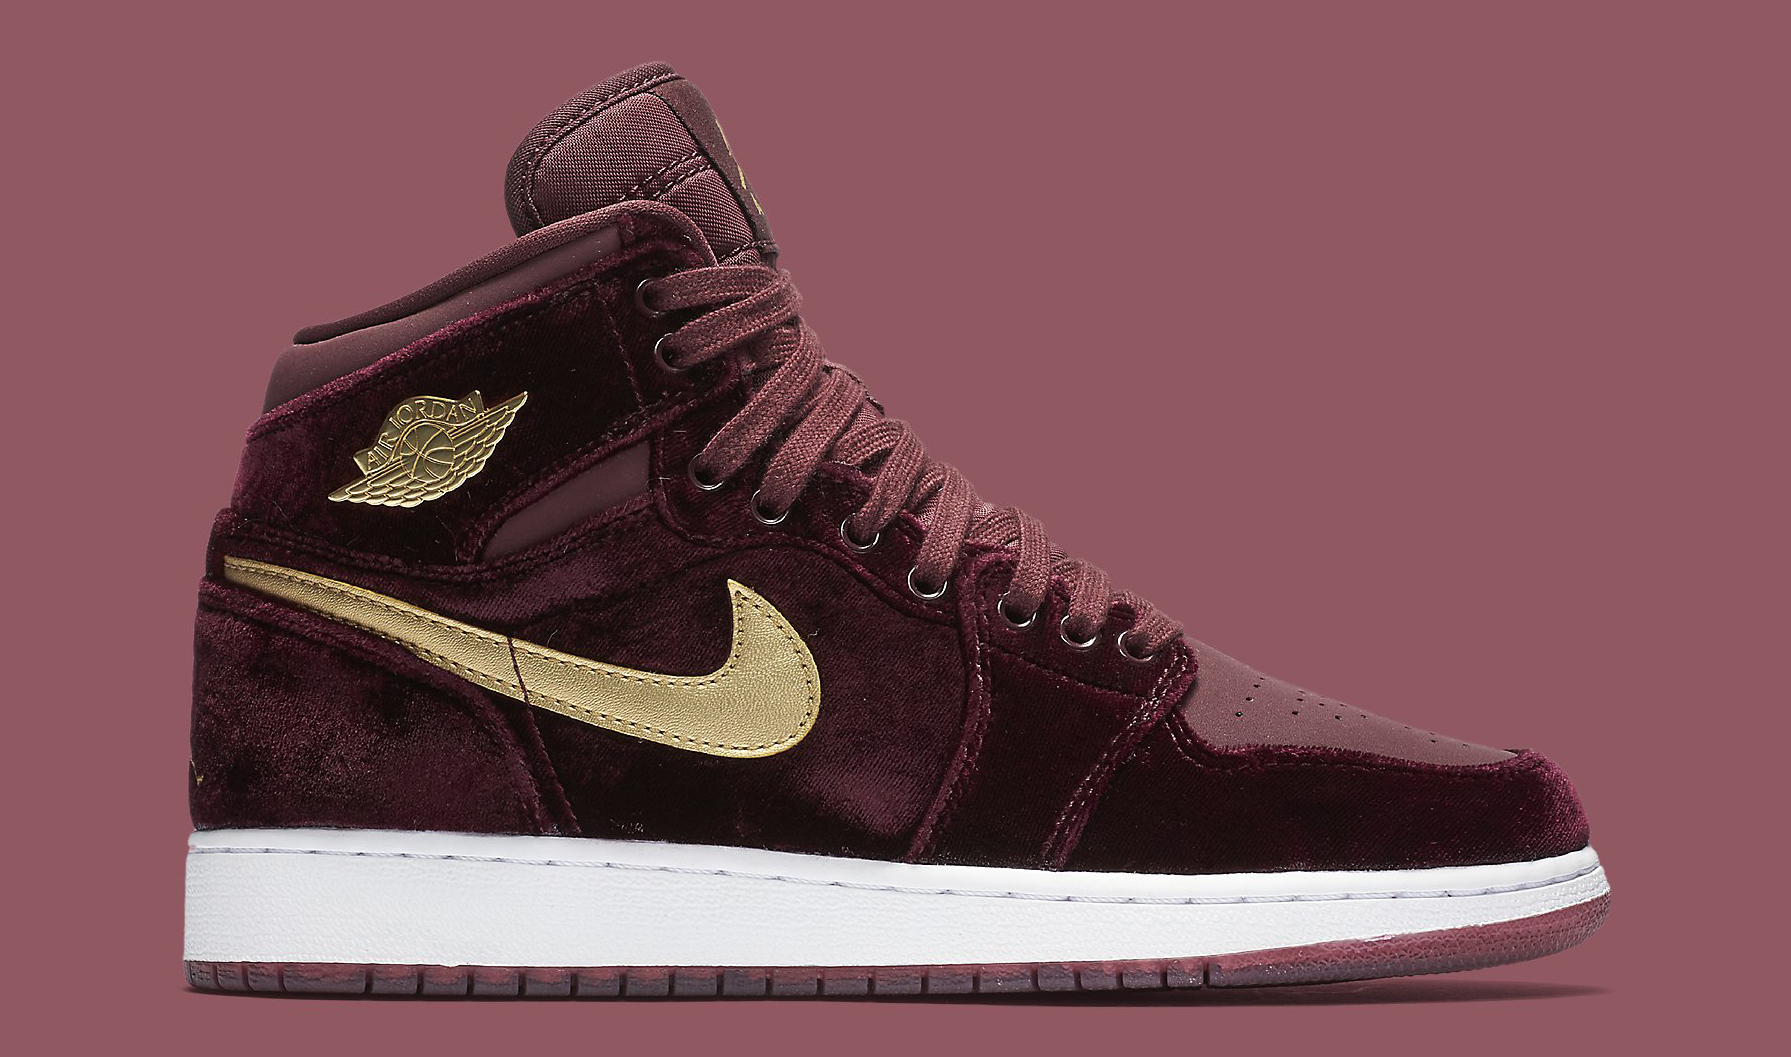 956ea9ee9b6b48 Image via Nike Red Velvet Air Jordan 1 Heiress 832596-640 Profile